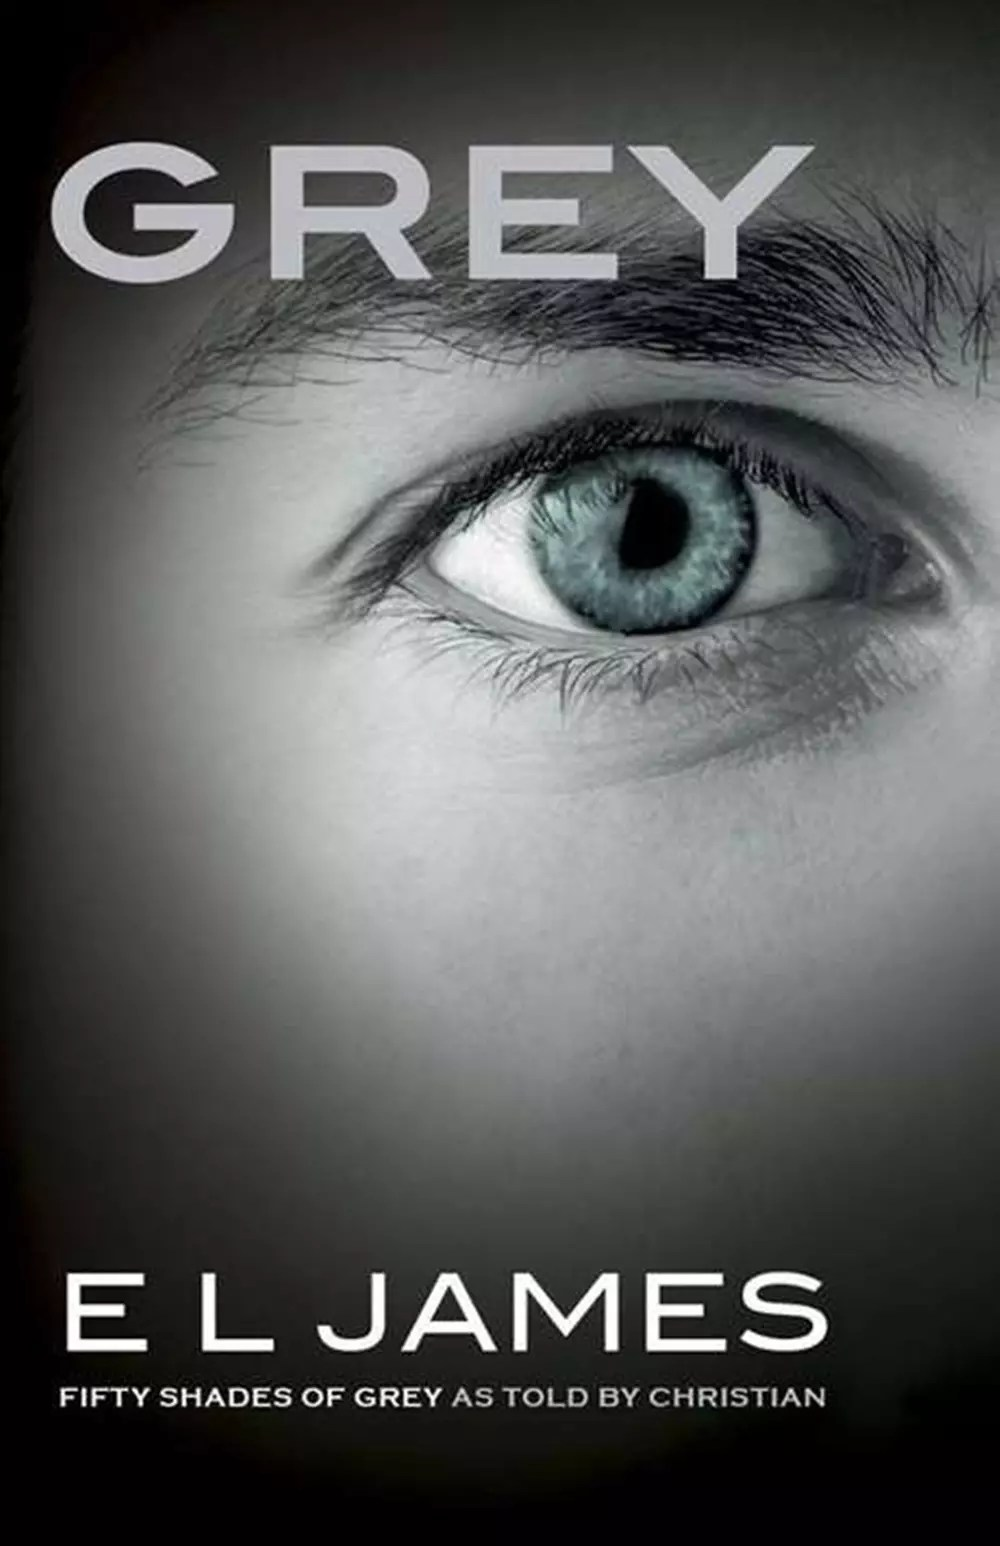 Libros E L James Grey E L James Reseña